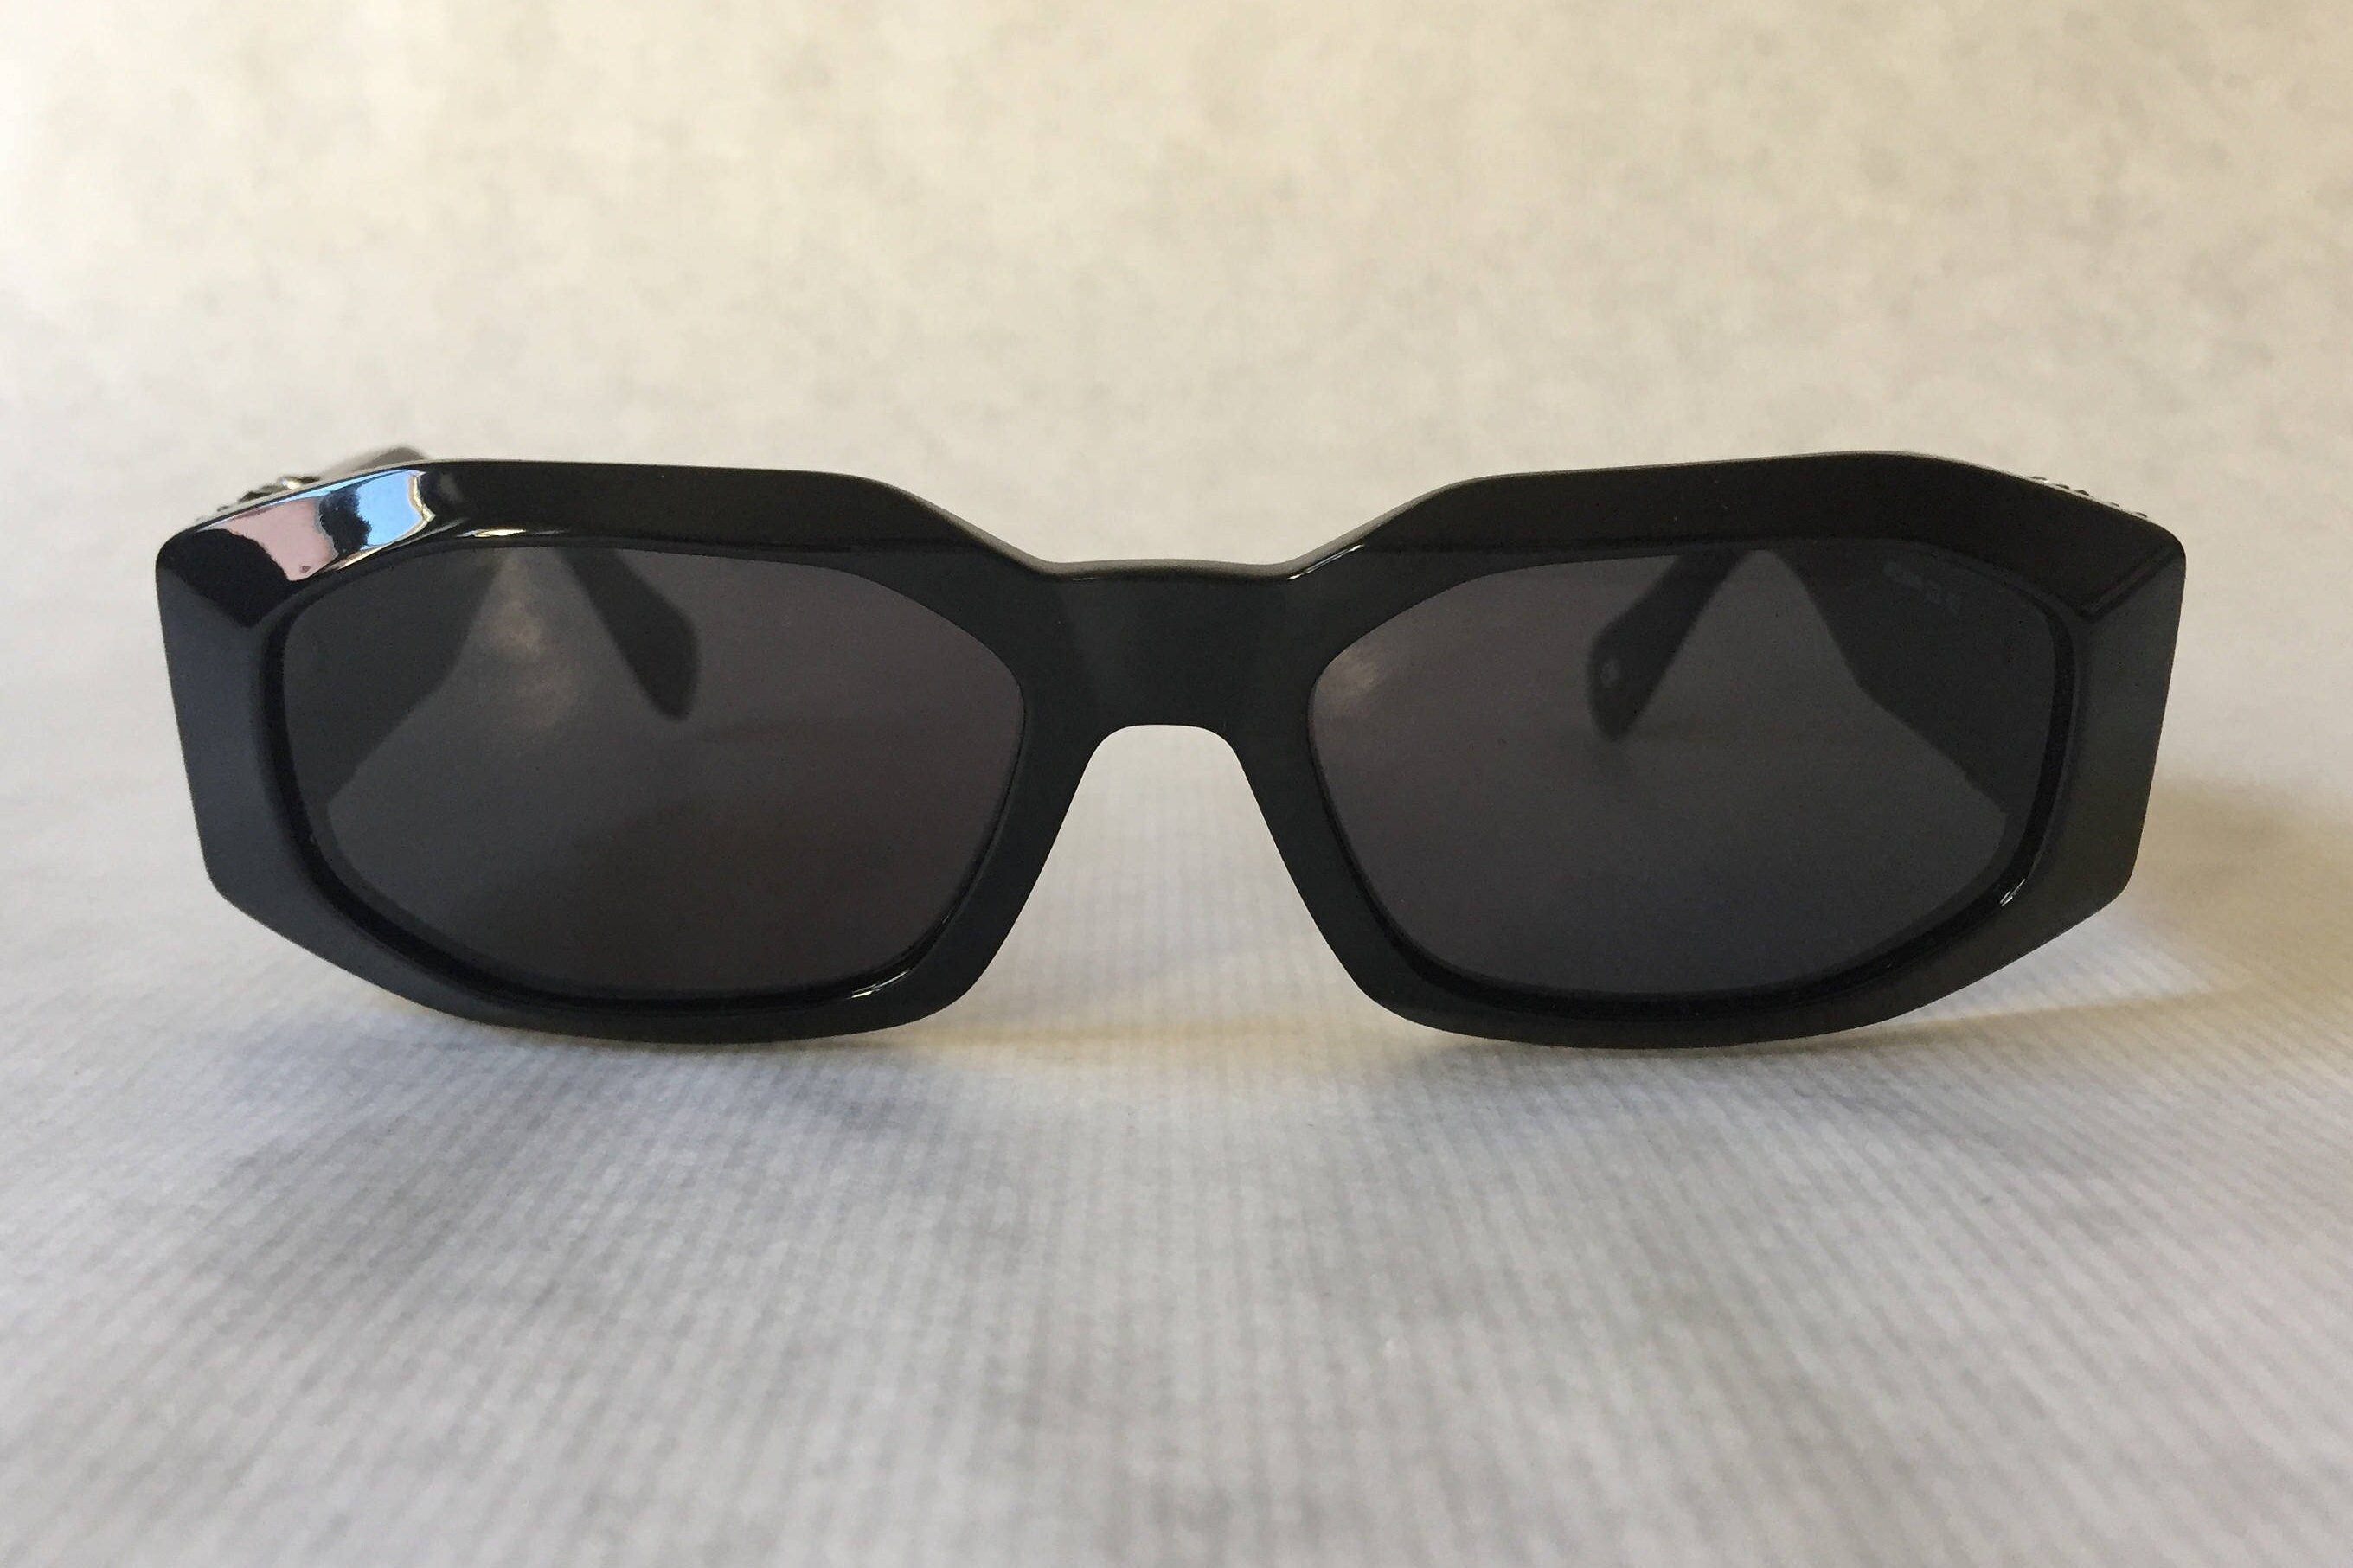 4276a2cec1ad Gianni Versace 414/H Col 852 Vintage Sunglasses New Old Stock ...